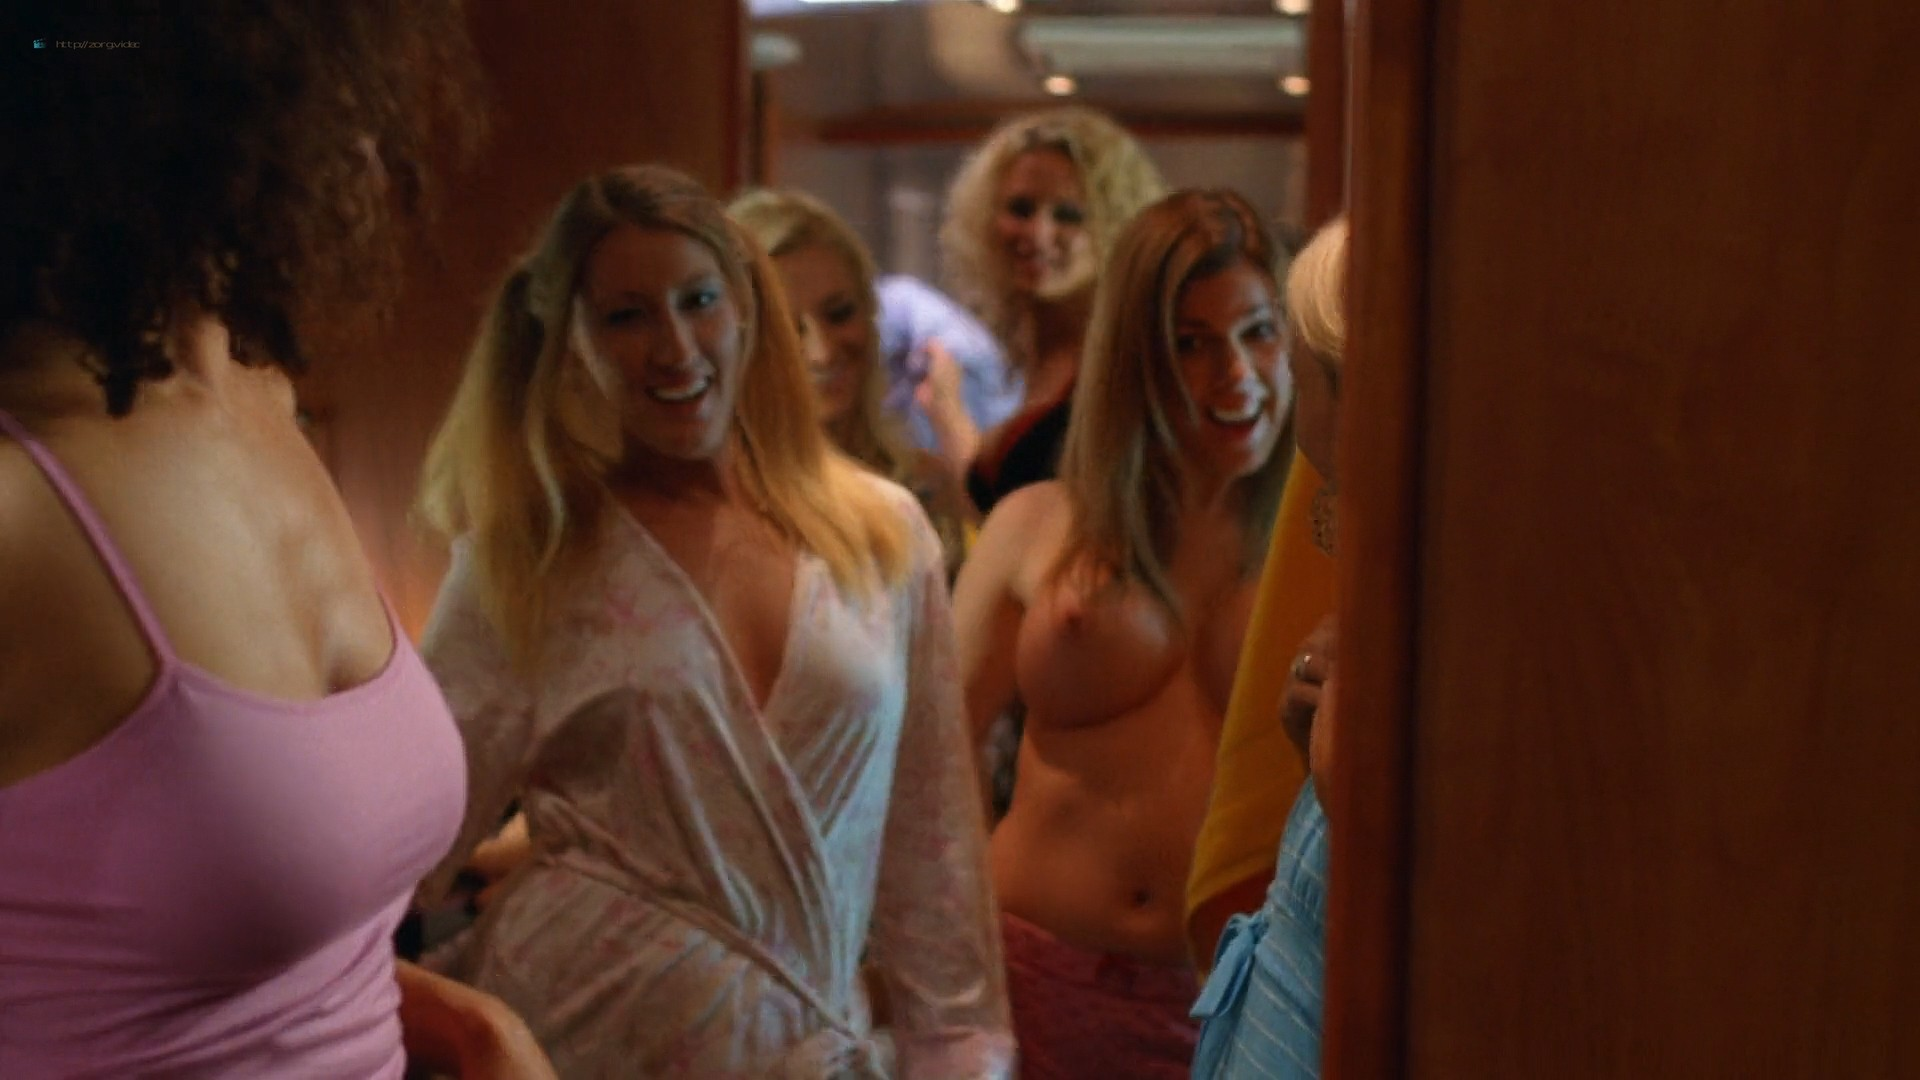 Julianna Guill Michelle Gordon and others all nude - Road Trip-Beer Pong (2009) HD 1080p Web (11)